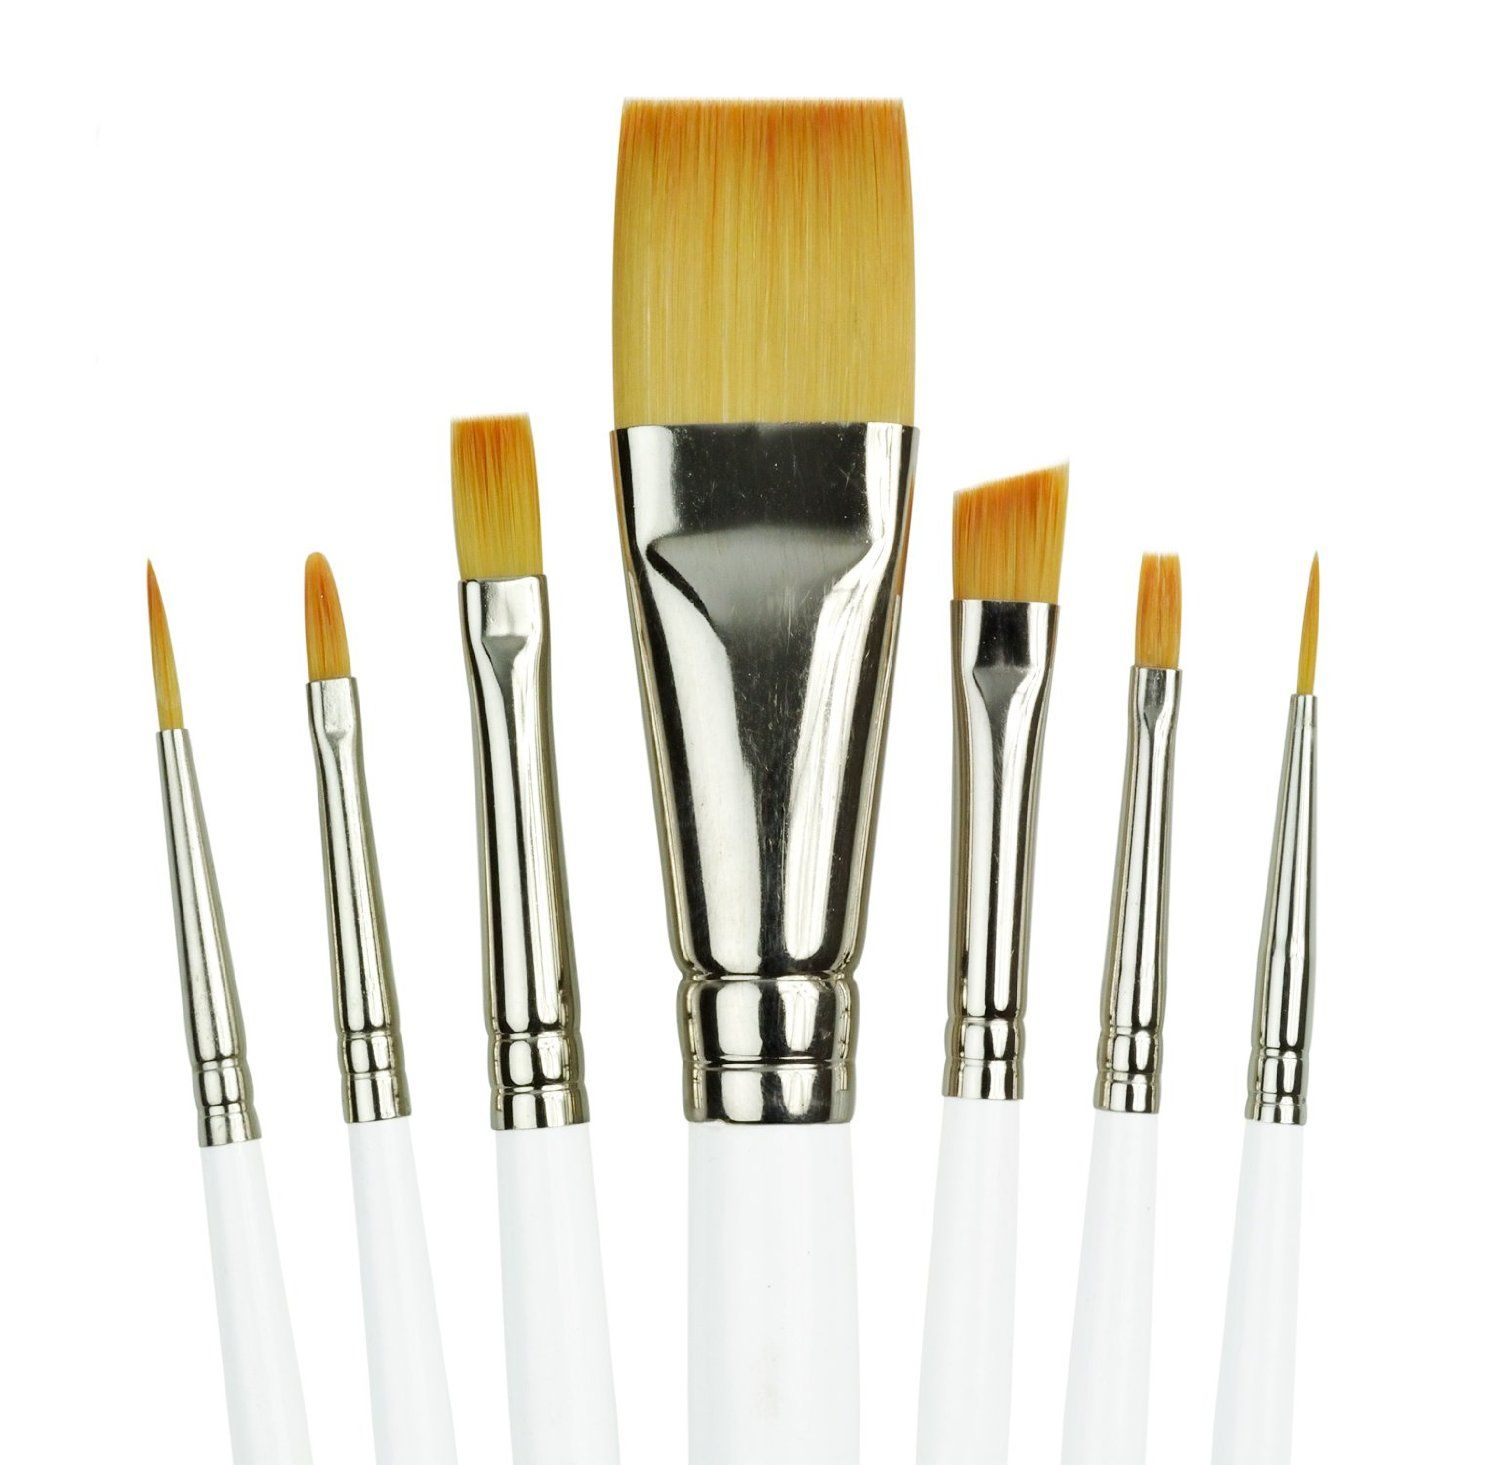 Paint Brushes Any Brands Sizes Types Wish List Counseling